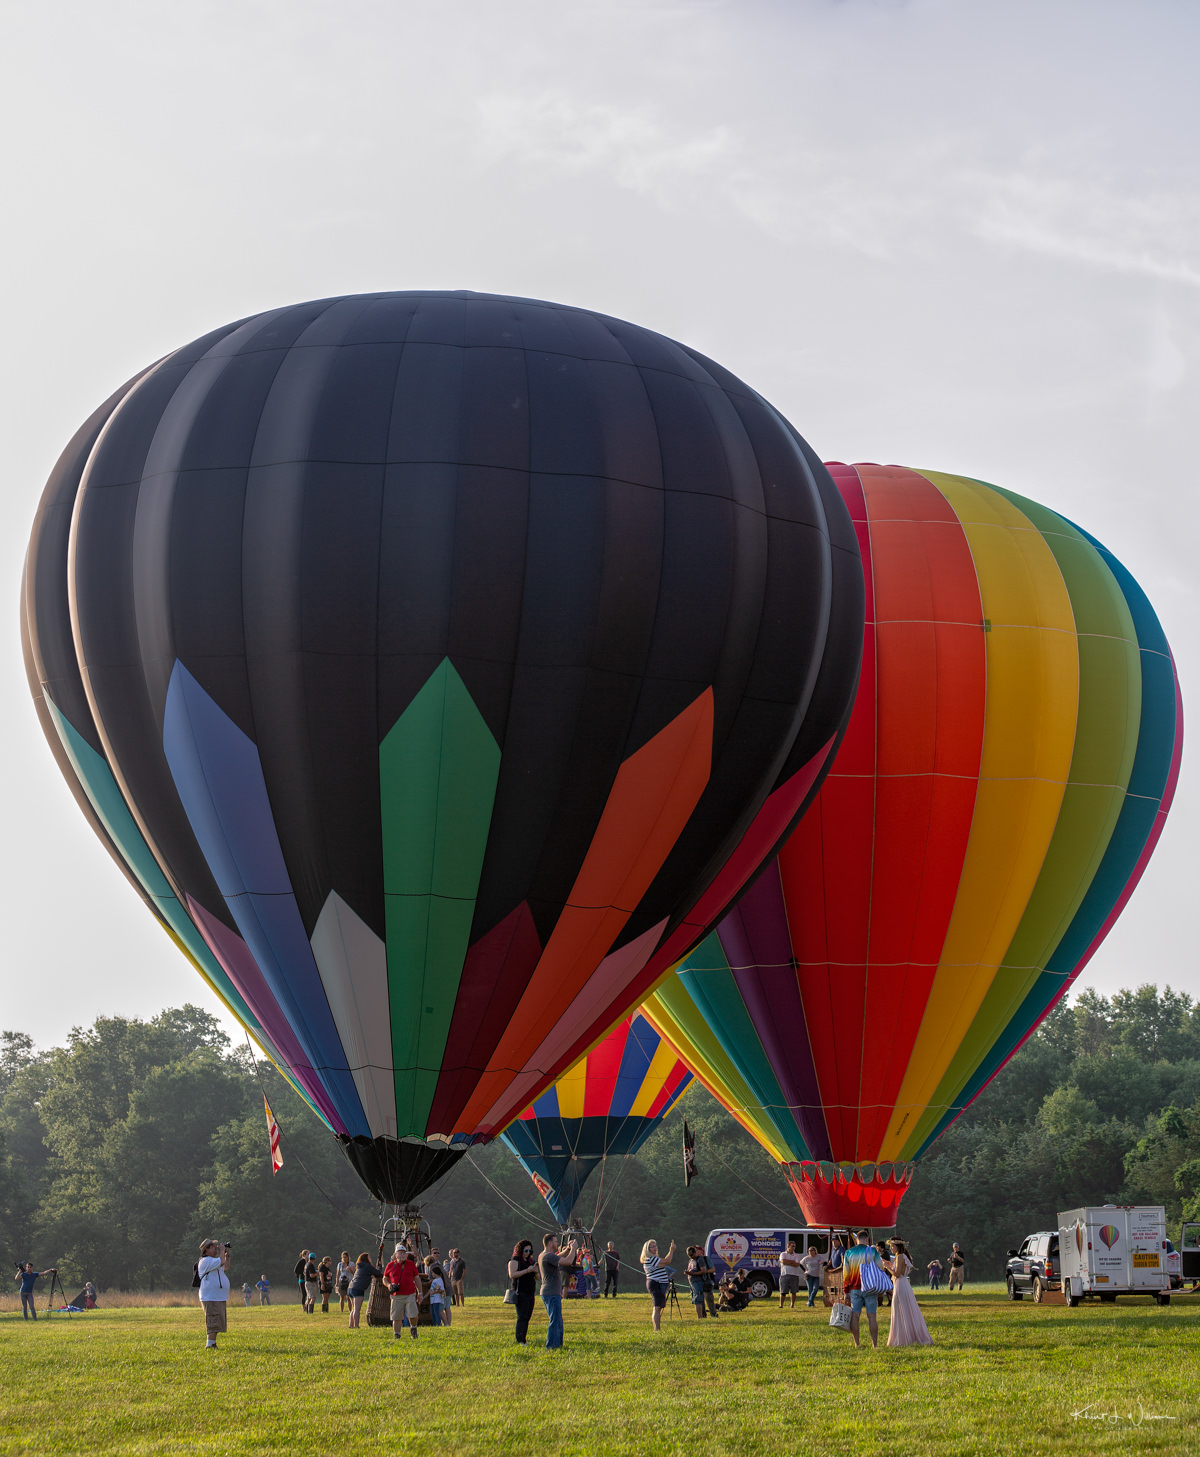 QuickChek Festival of Ballooning pre festival Media Launch QuickChek Festival of Ballooning Media Launch Canon EOS 5D Mark III 20180727 6938 Edit Edit Edit blog